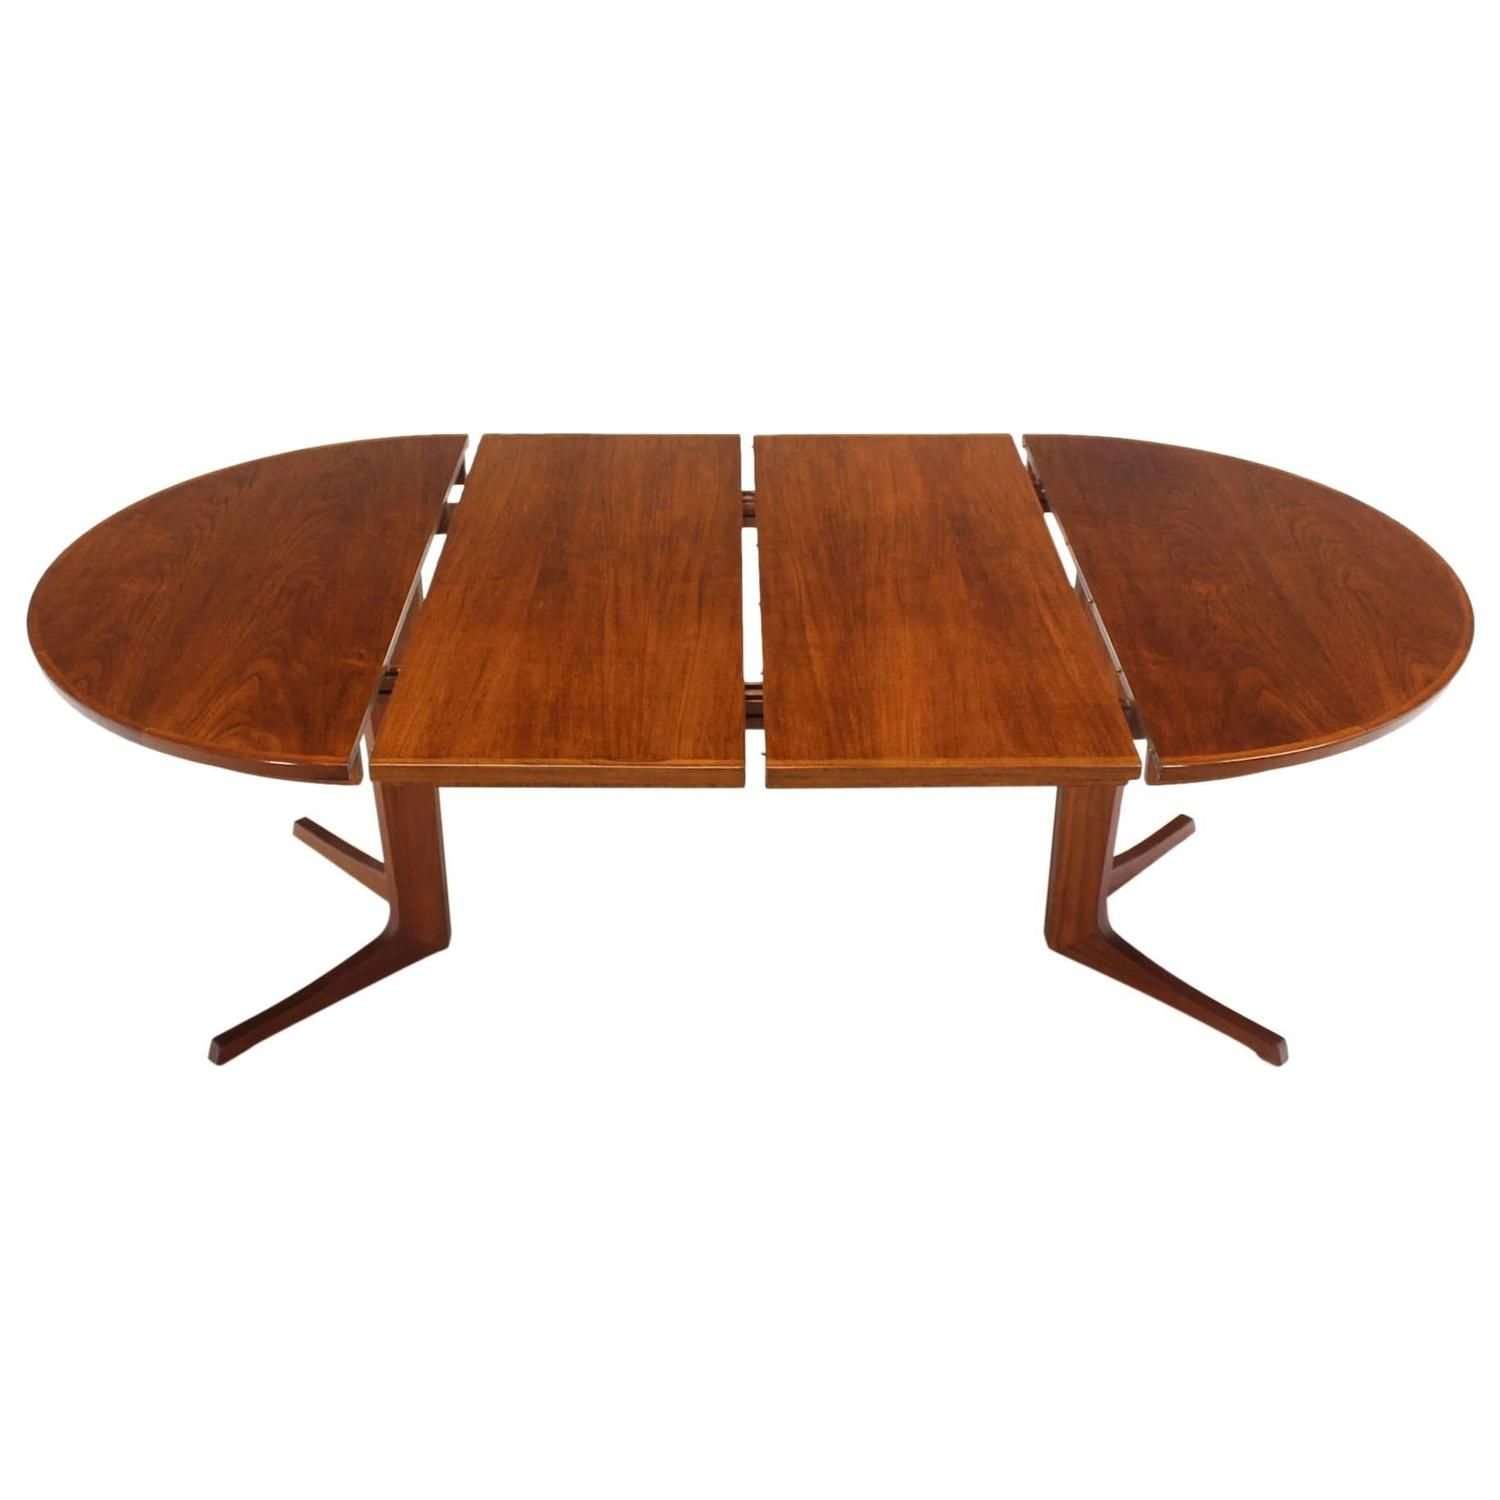 Round Danish MidCentury Modern Teak Dining Table With Two Leaves - Teak dining table with leaf